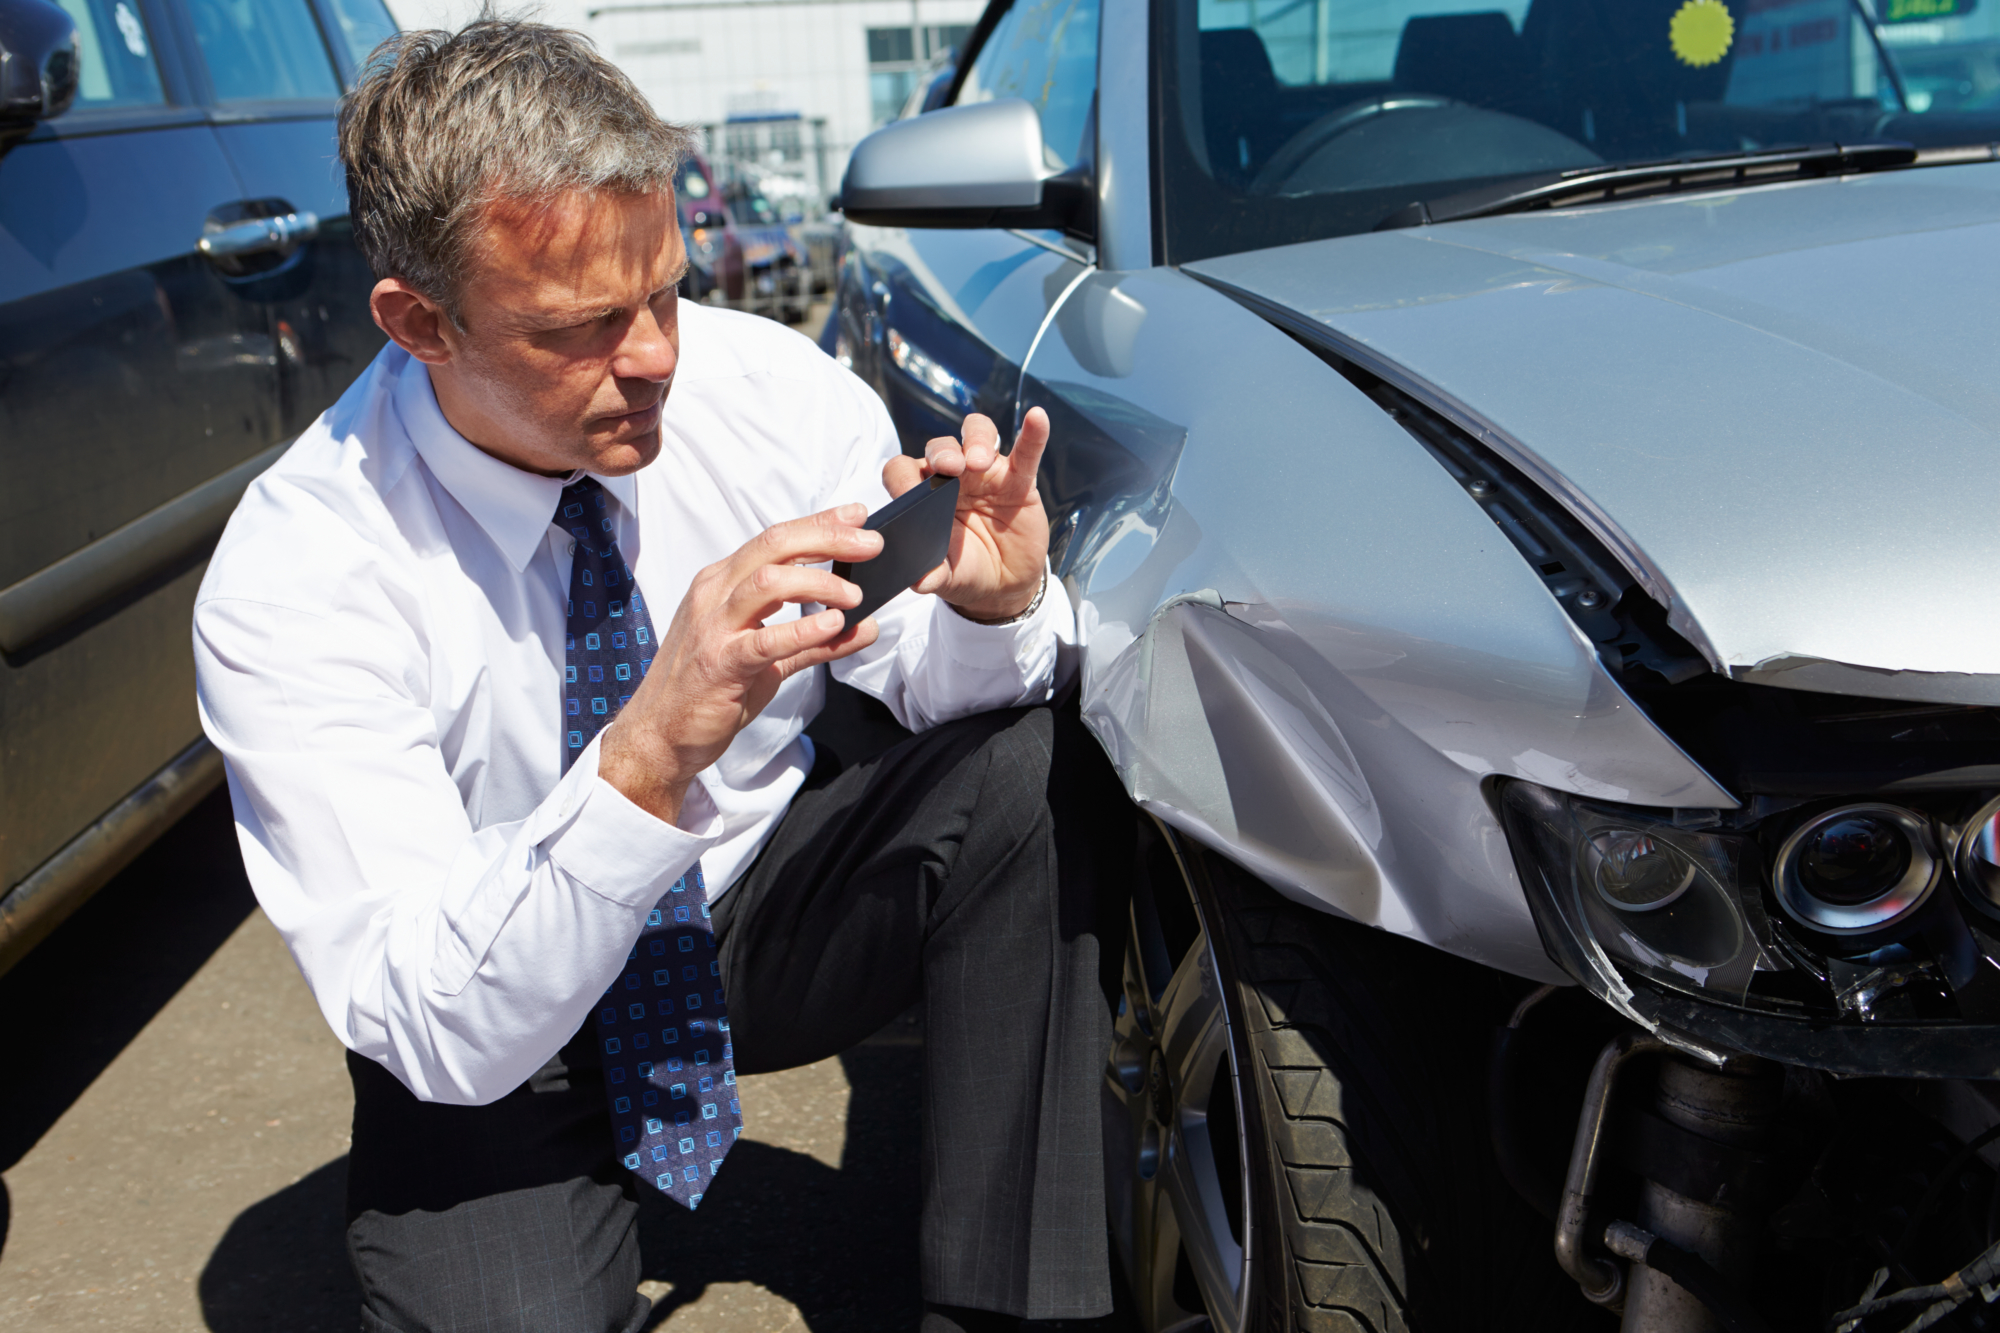 insurance adjuster documenting damage after a car accident